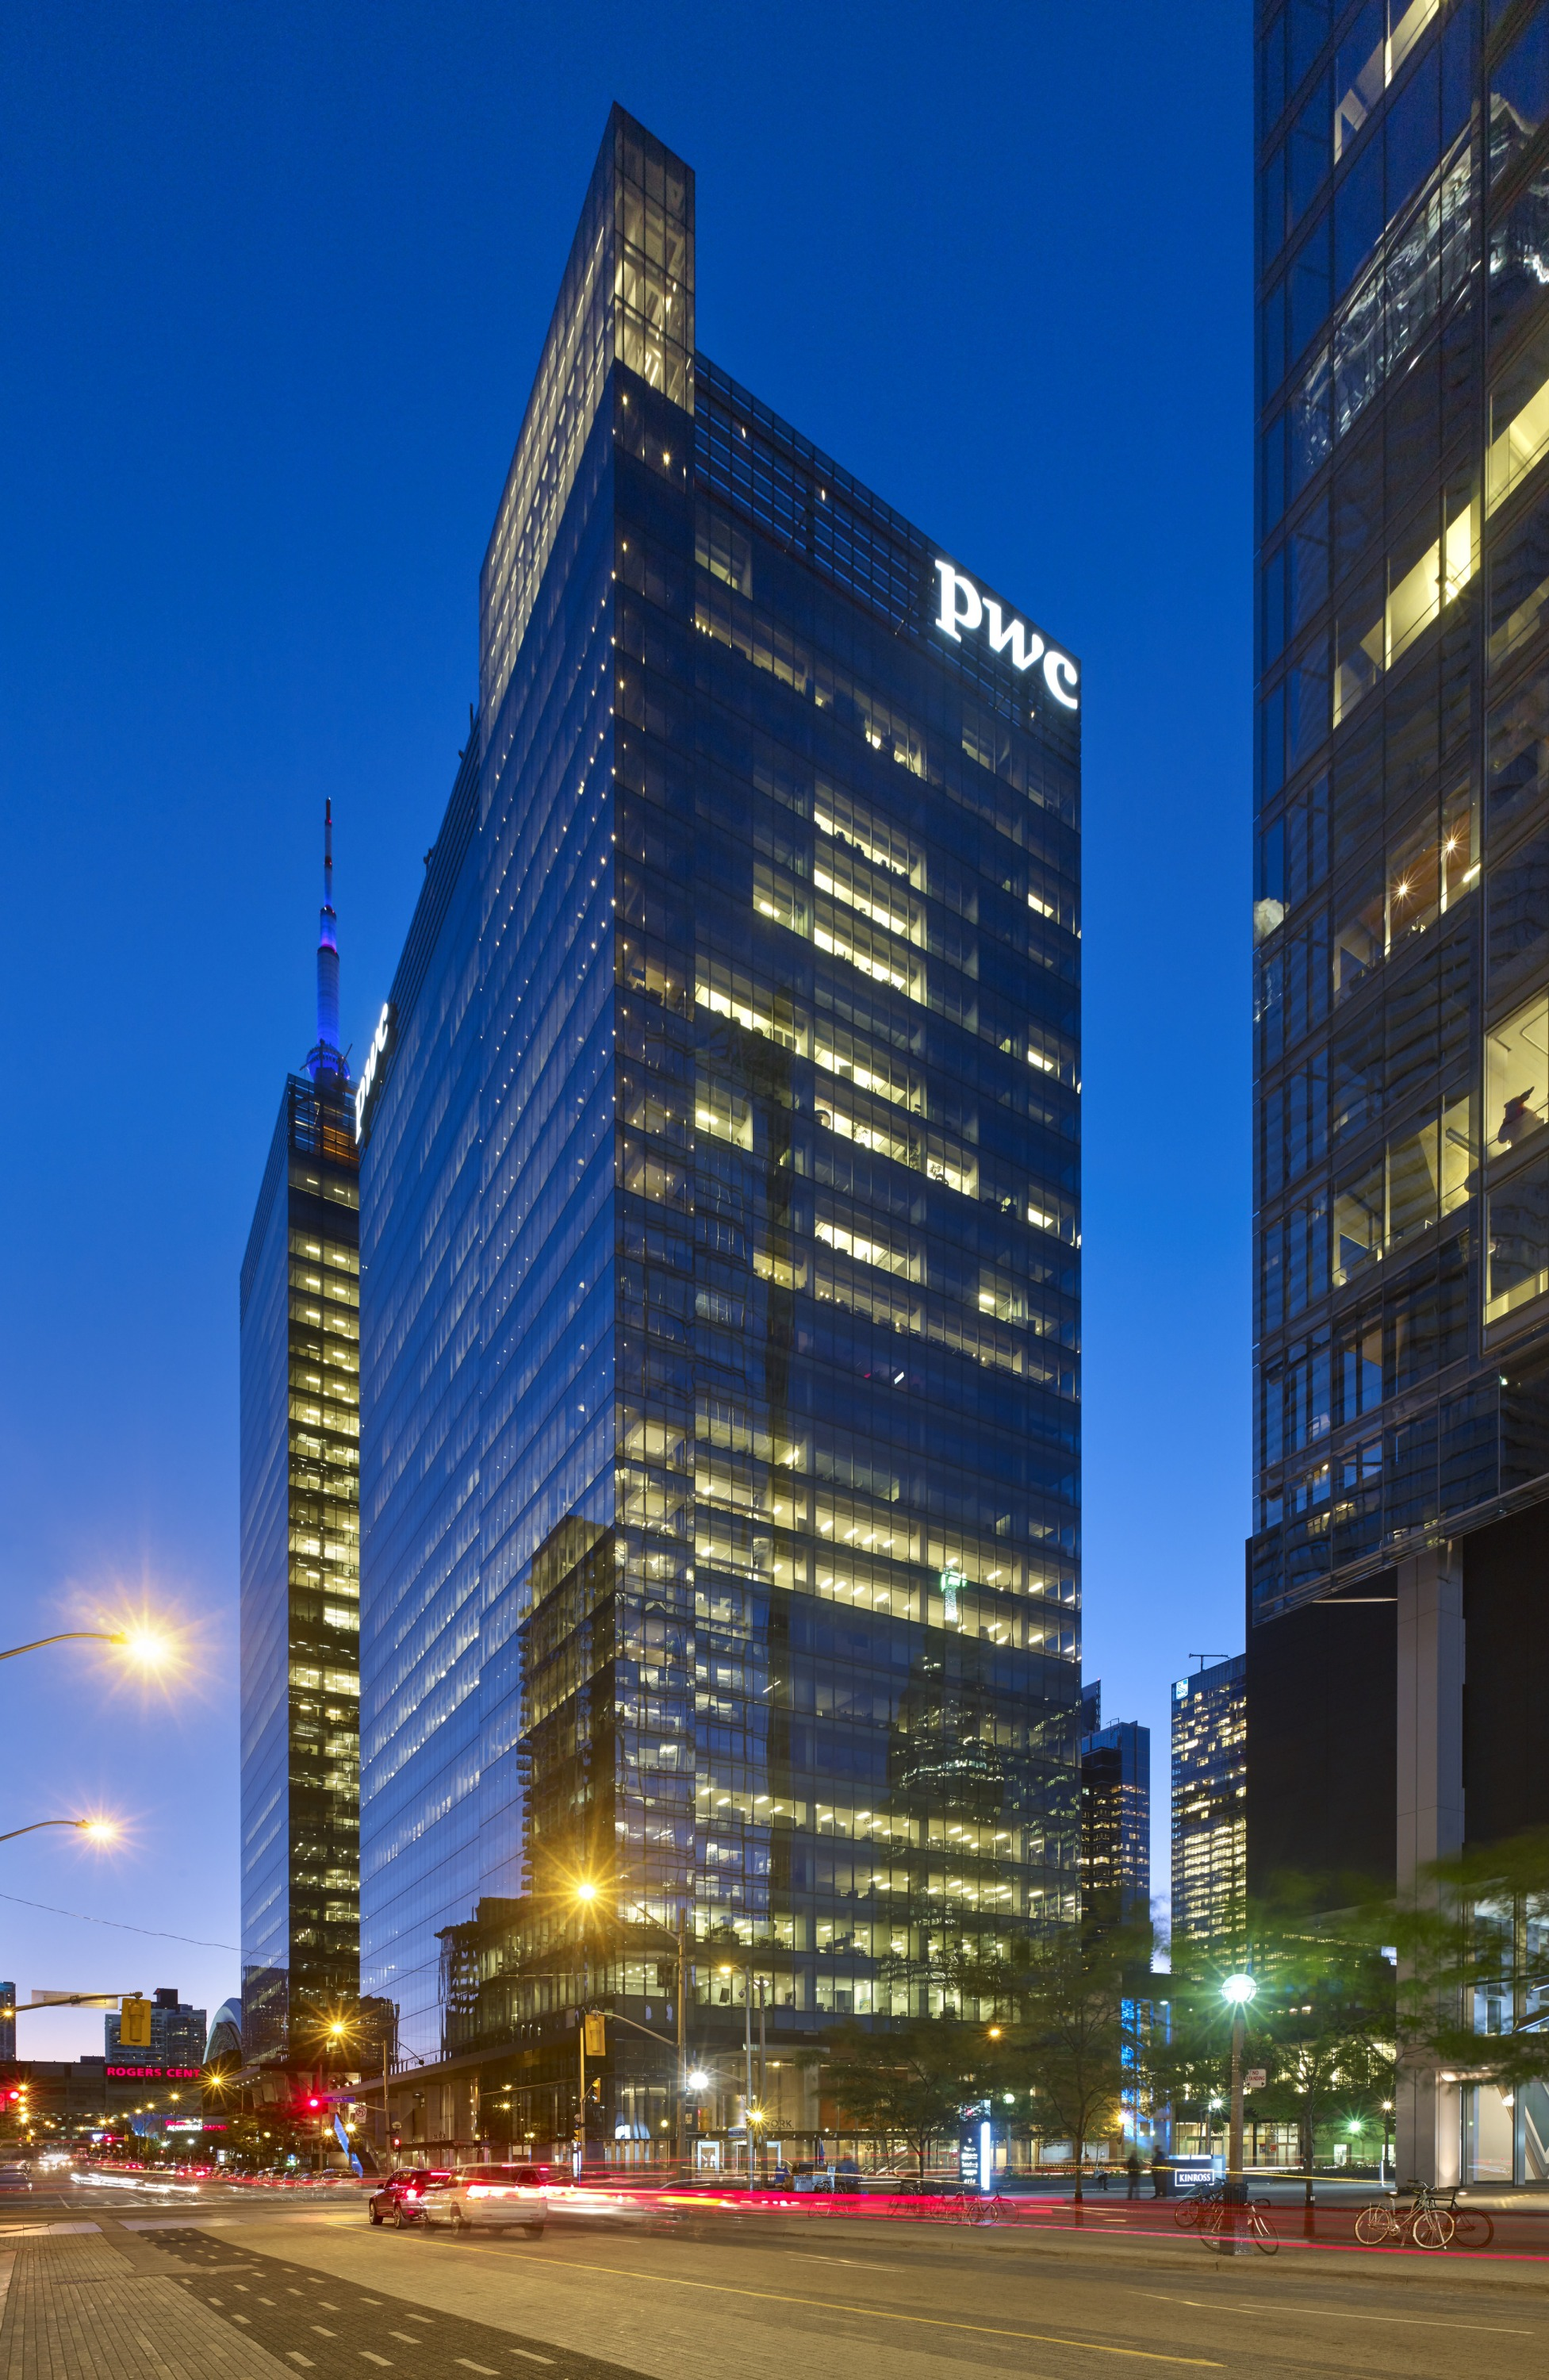 Southcore Financial Centre Bremner Tower And Pwc Tower